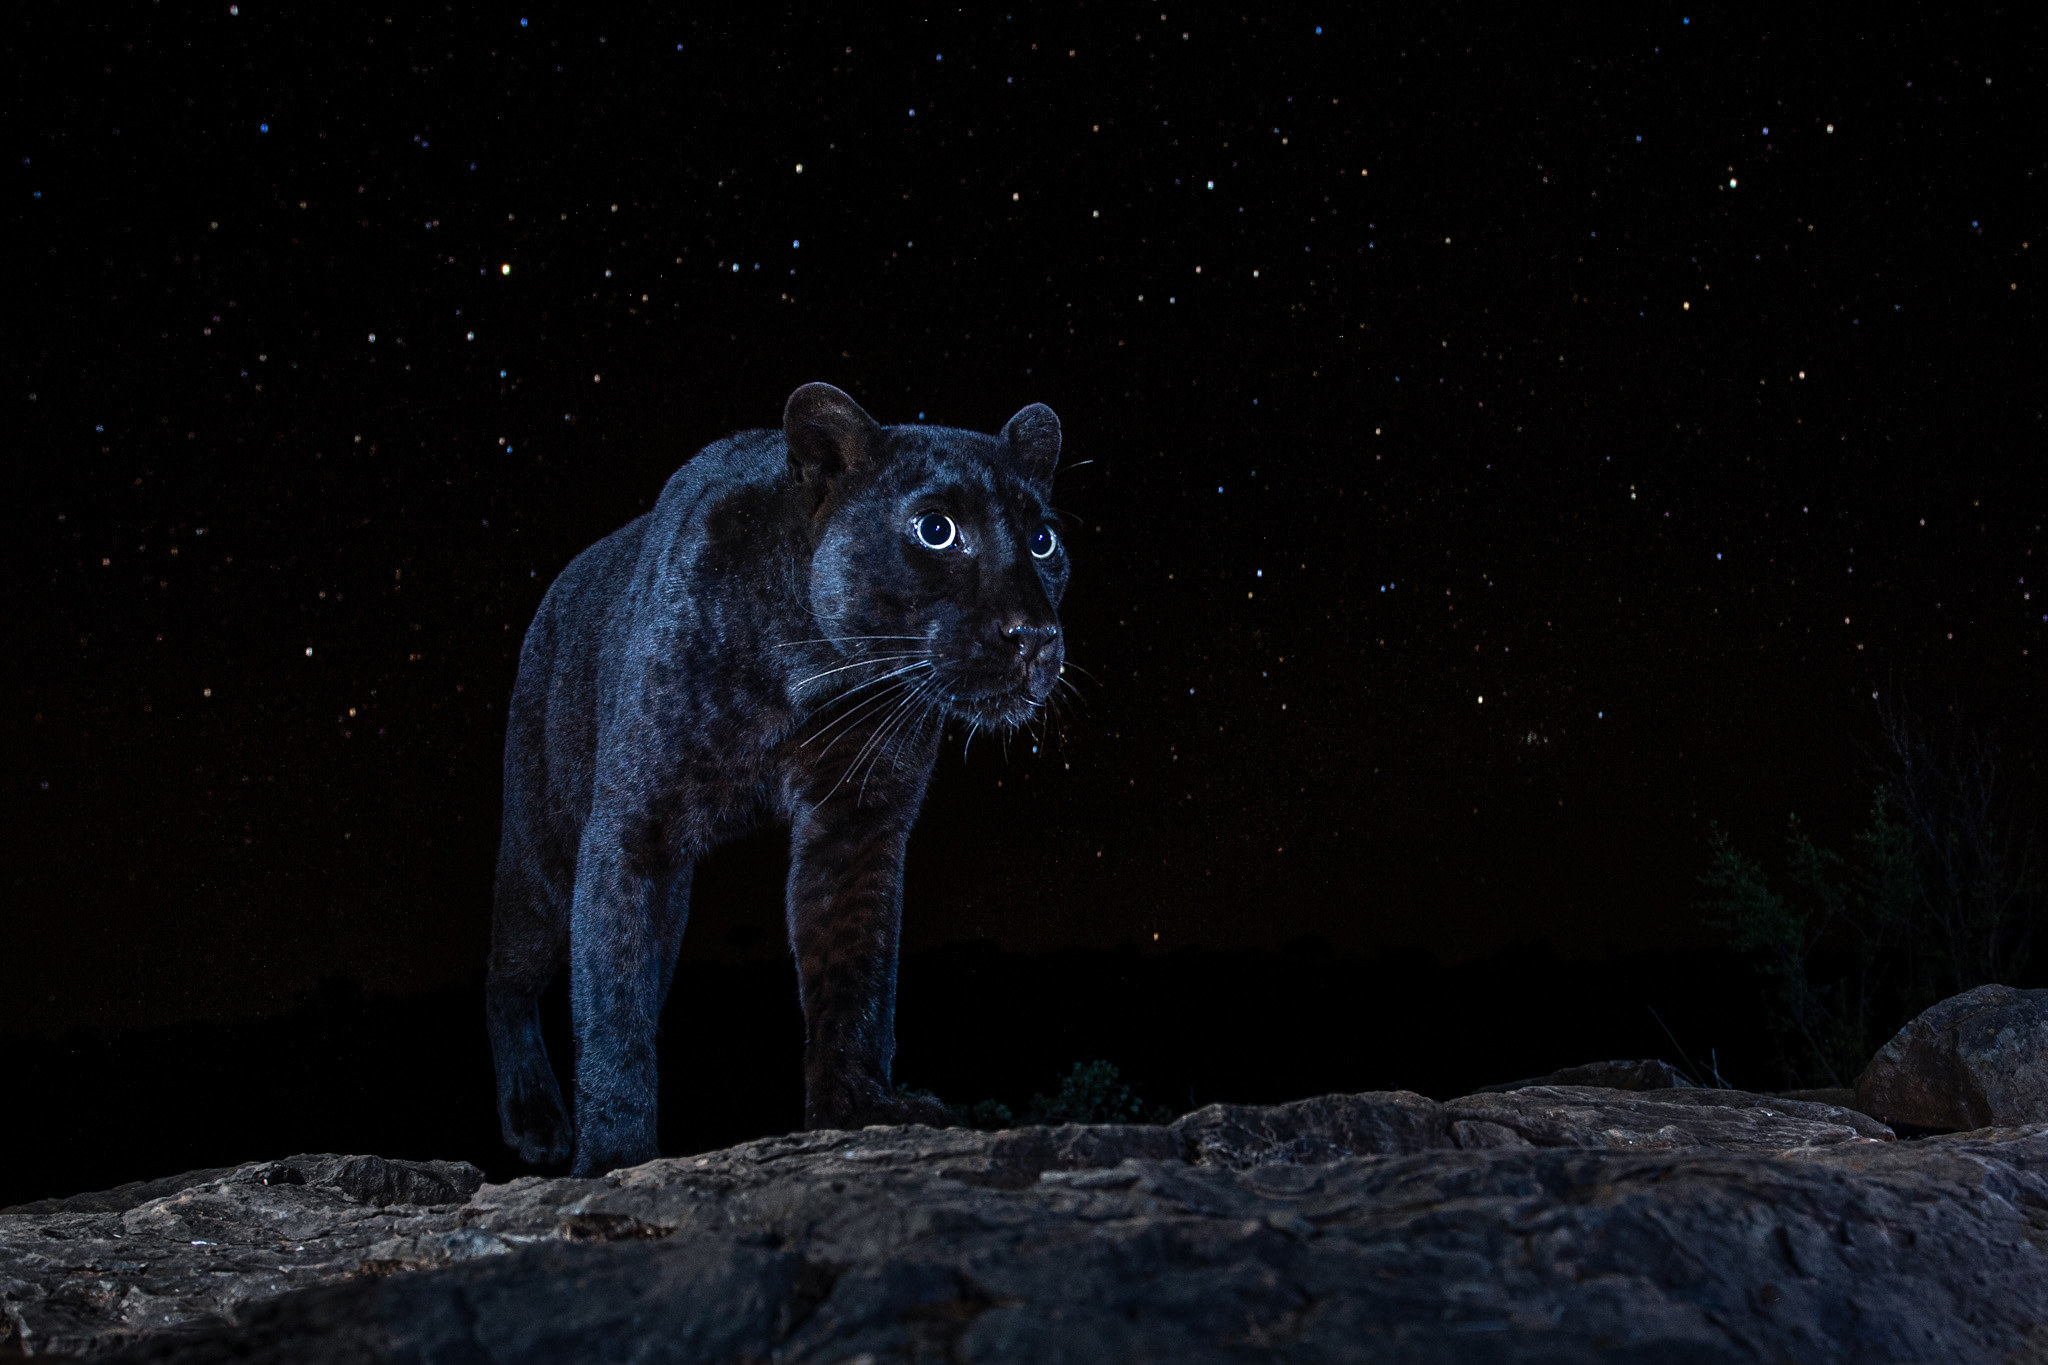 A panther on a starry night in Laikipia County, Kenya, July 2019